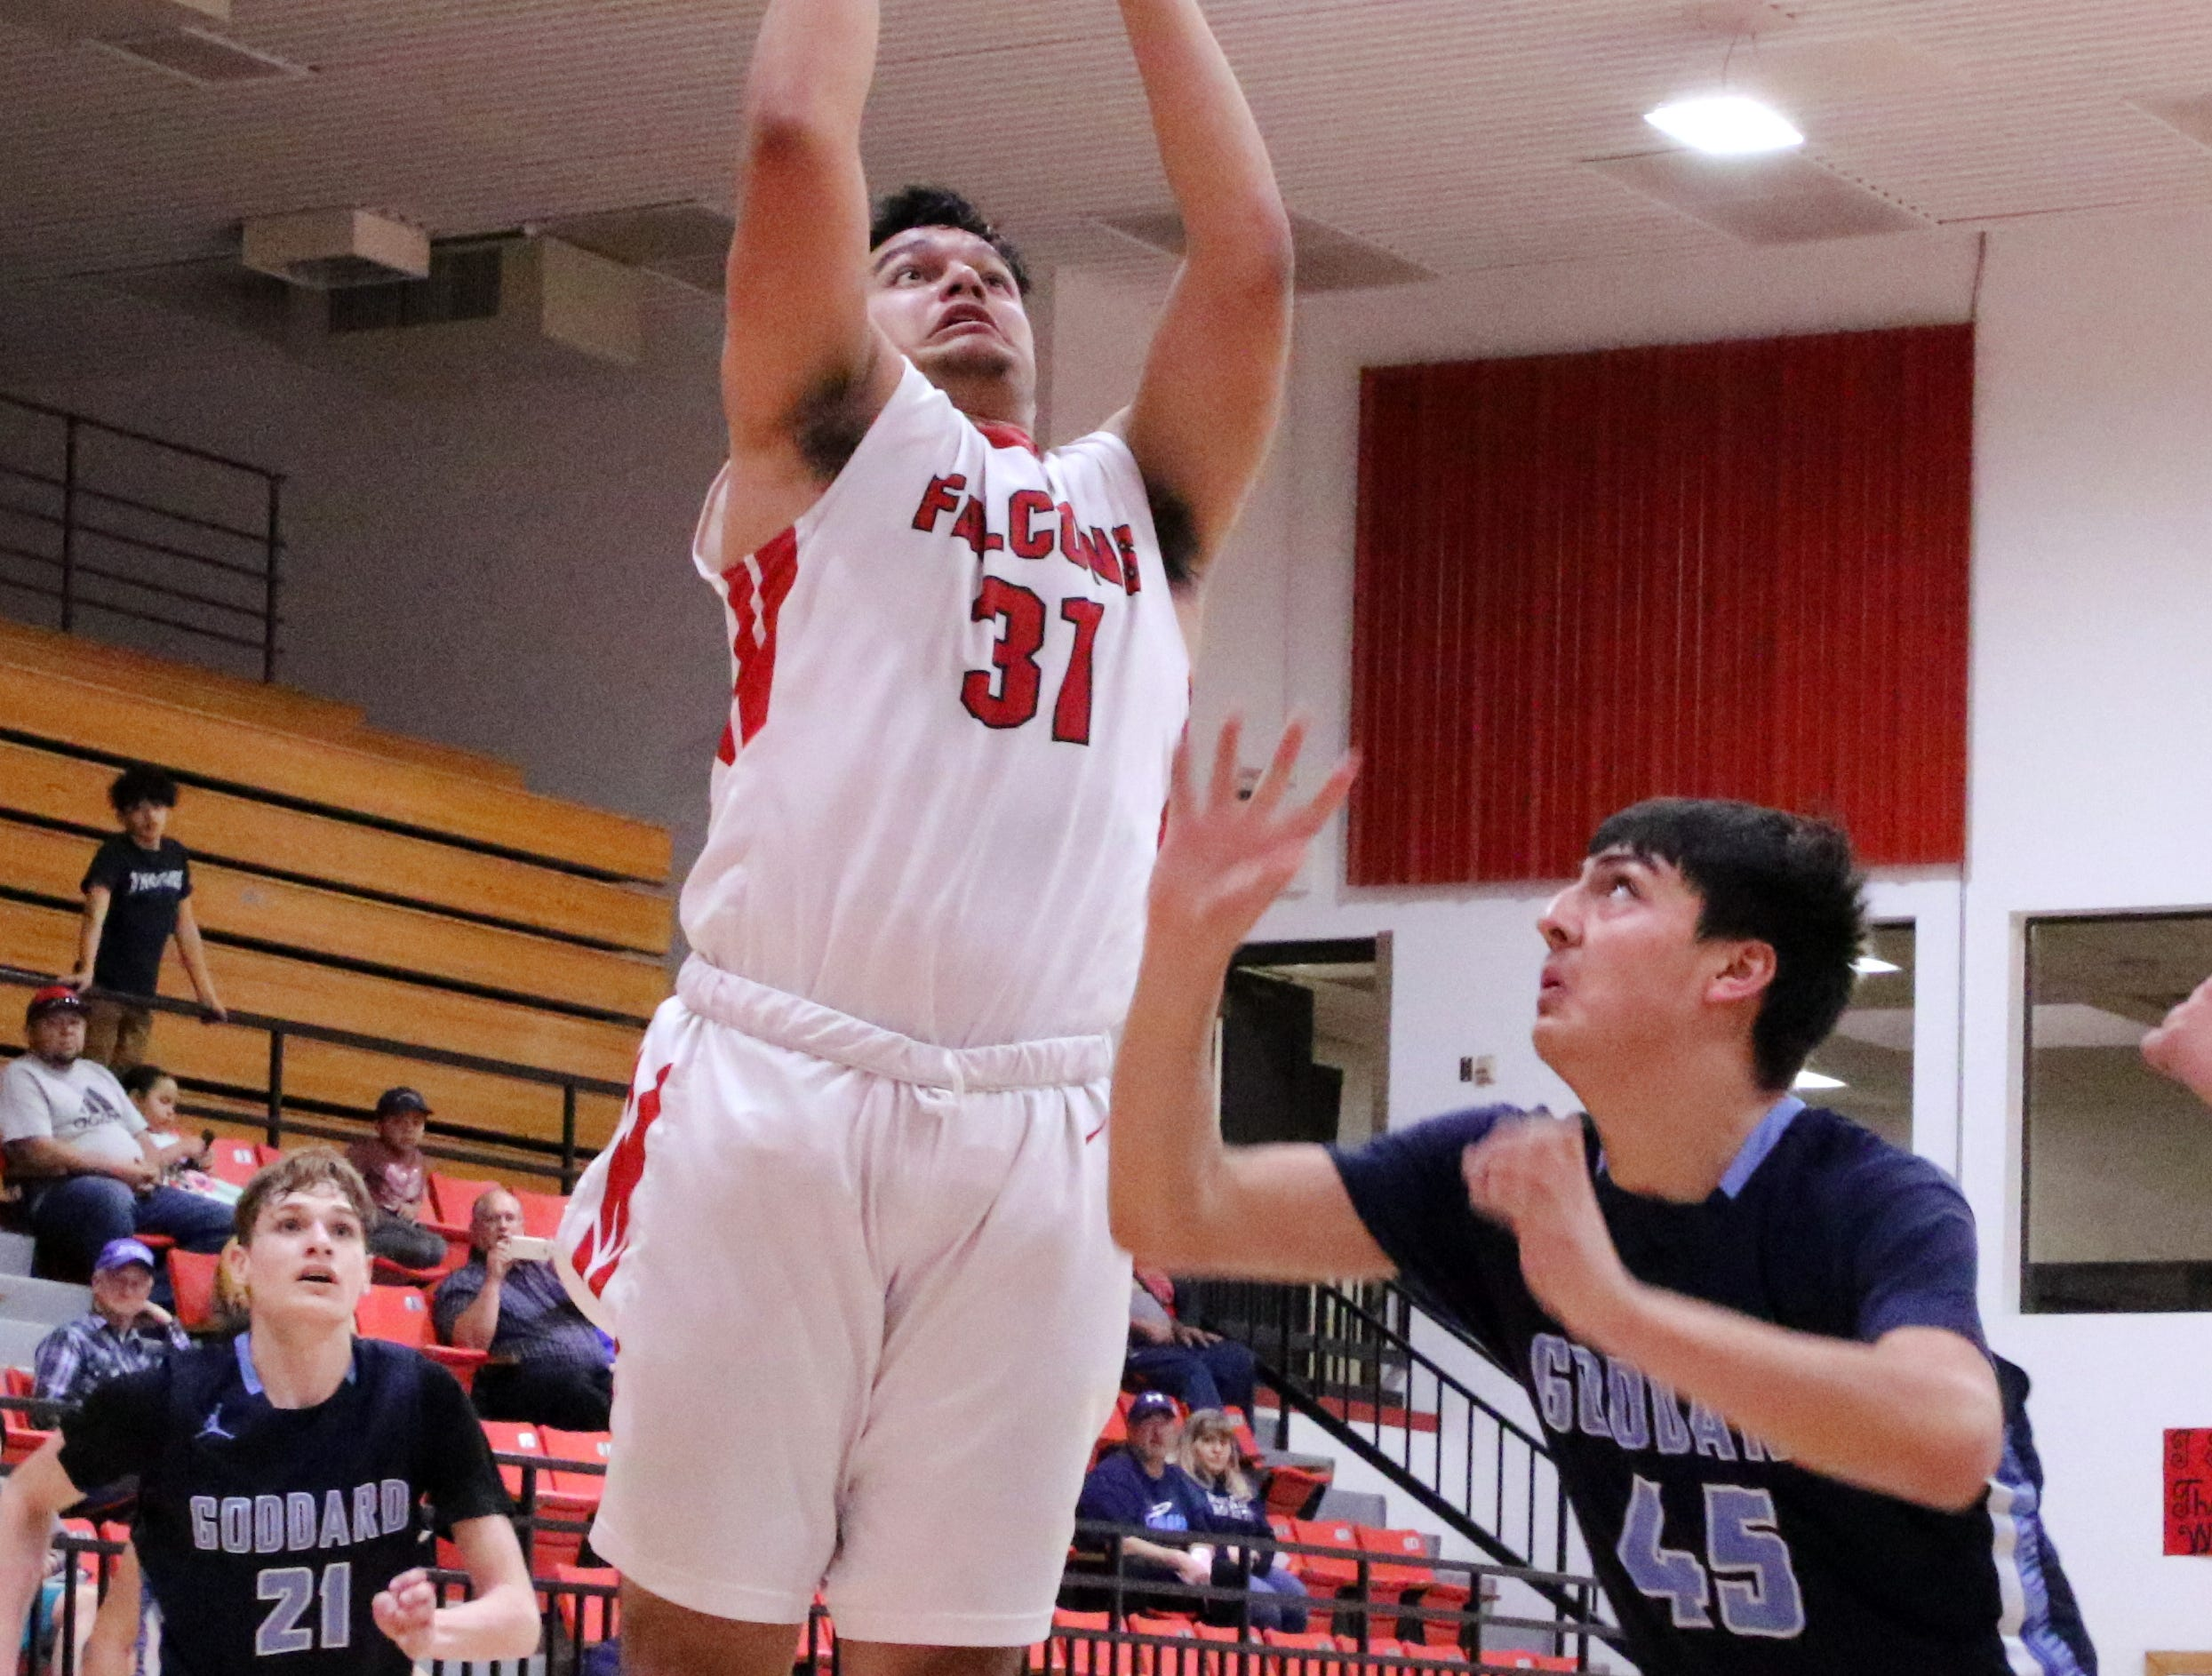 Kevin Porras puts up a layup in the fourth quarter of Saturday's game against Goddard.